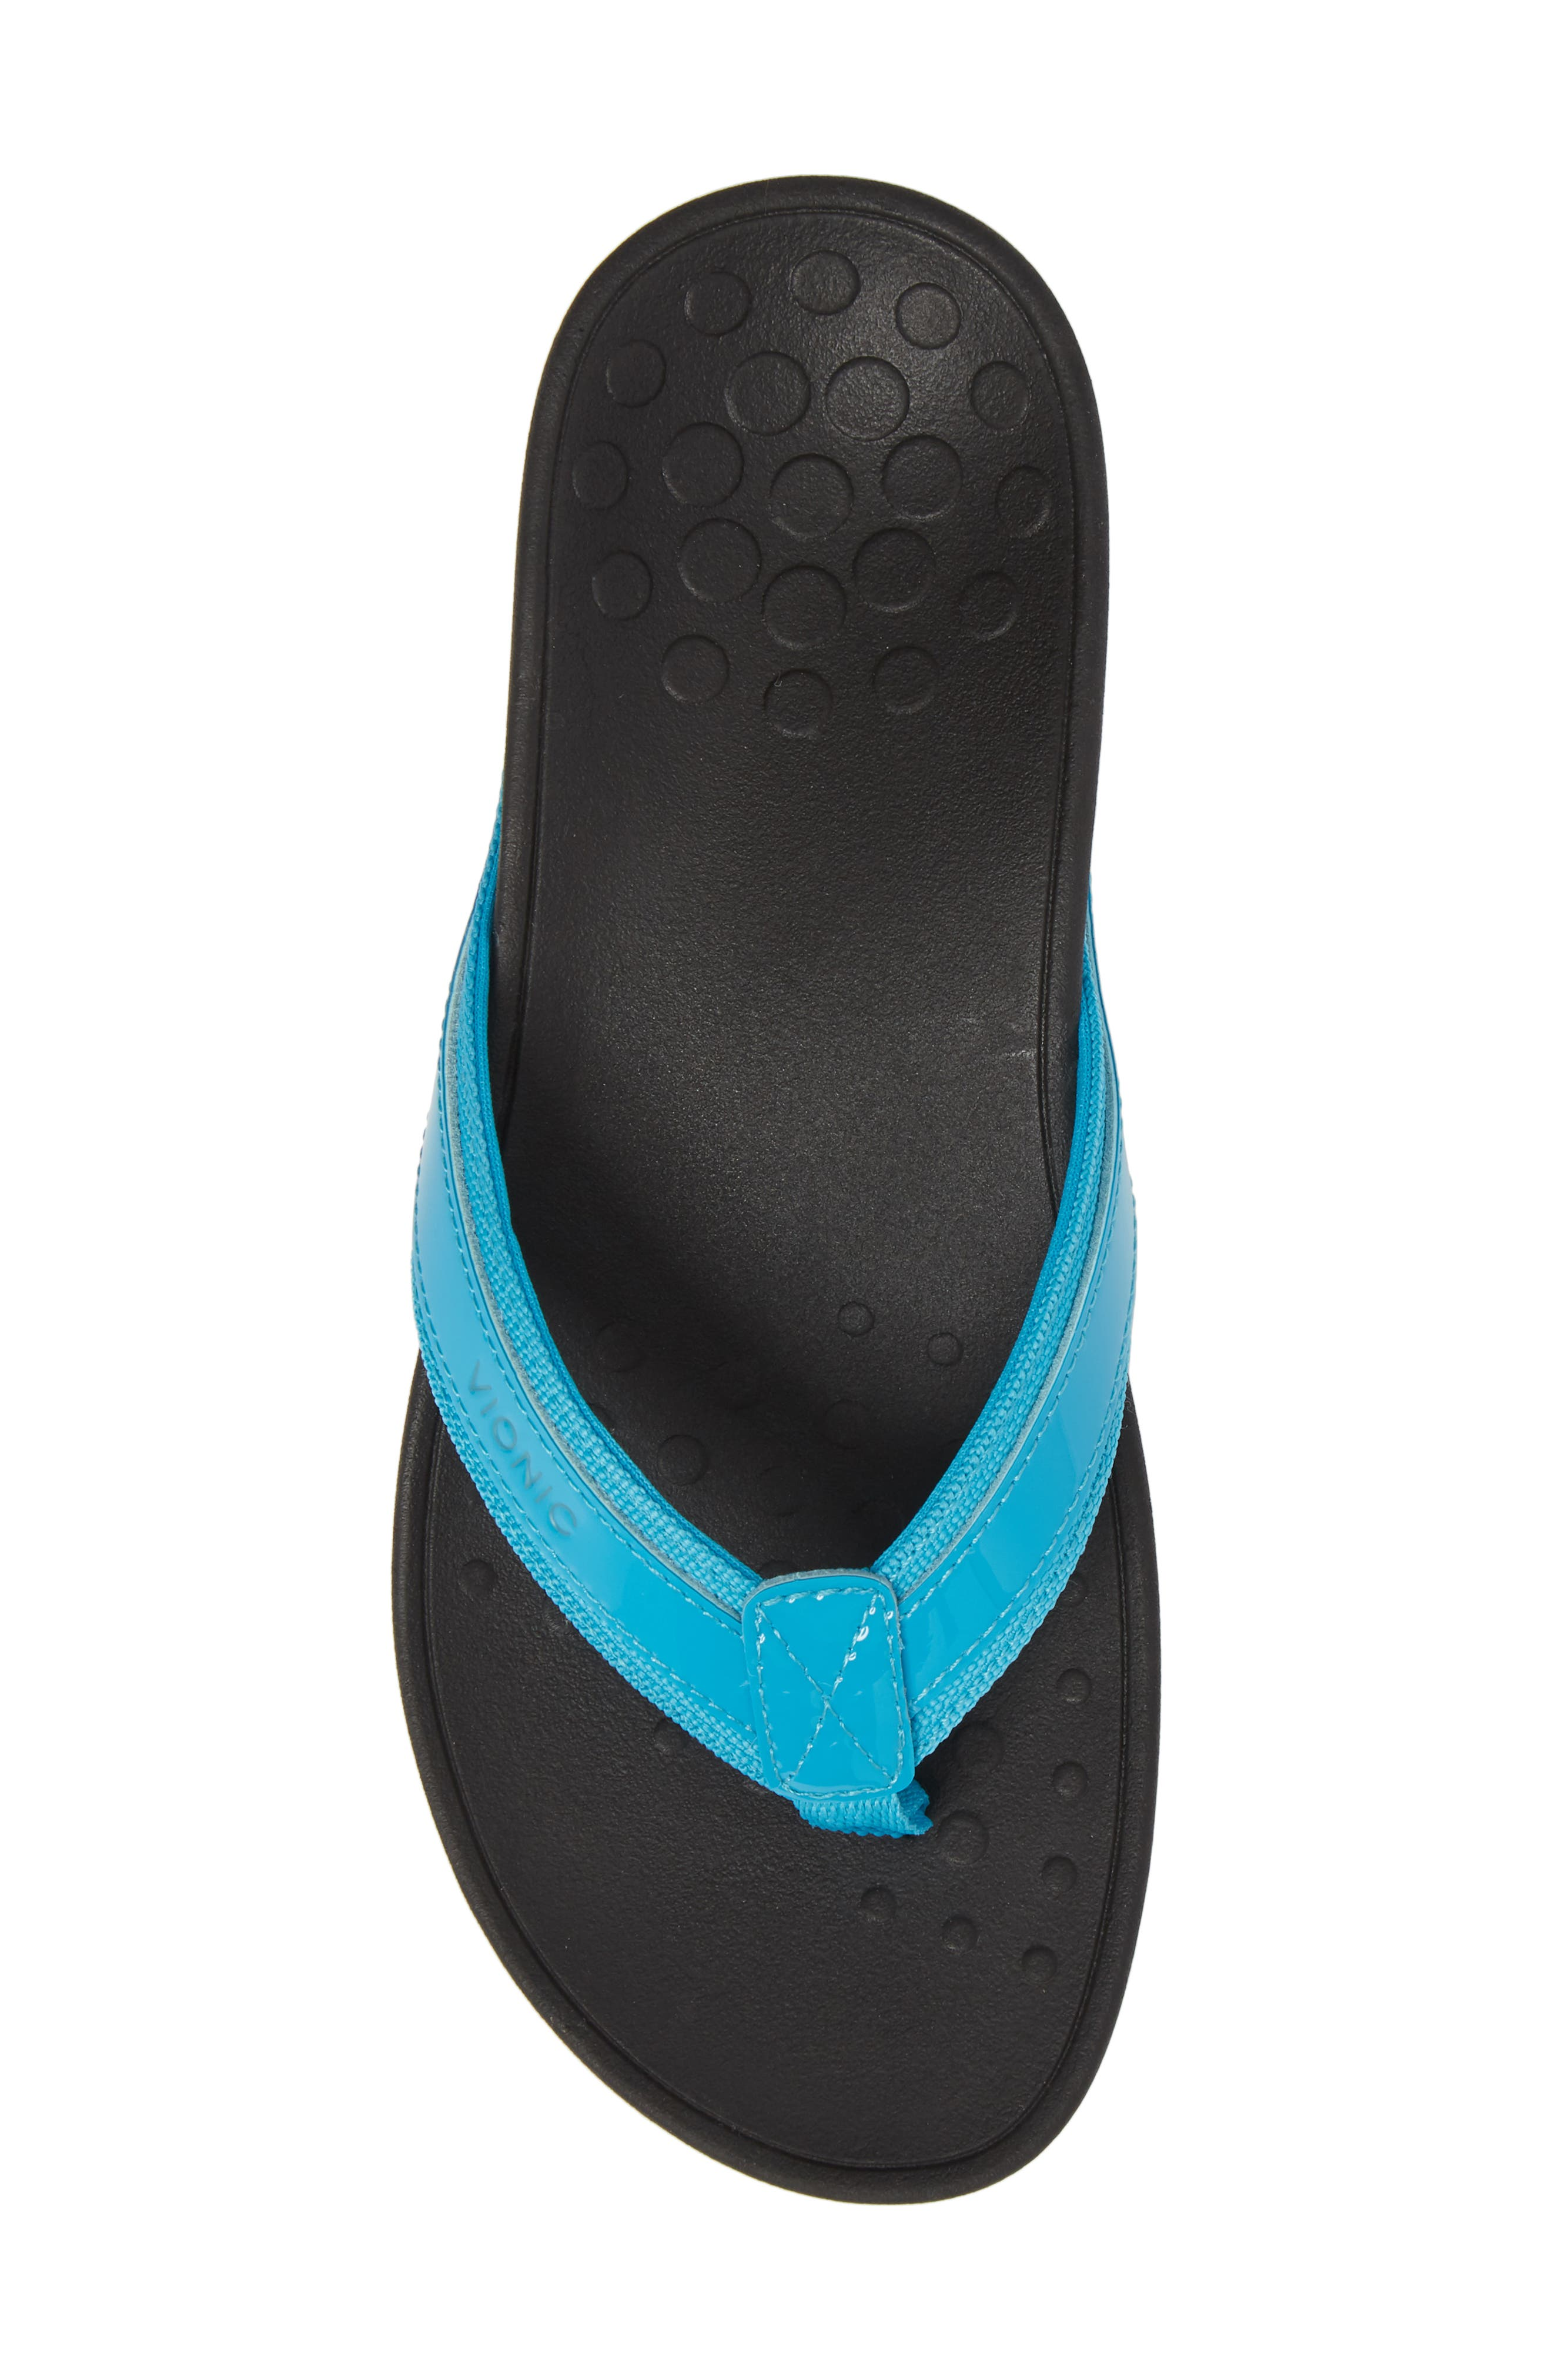 High Tide Wedge Flip Flop,                             Alternate thumbnail 5, color,                             Turquoise Leather